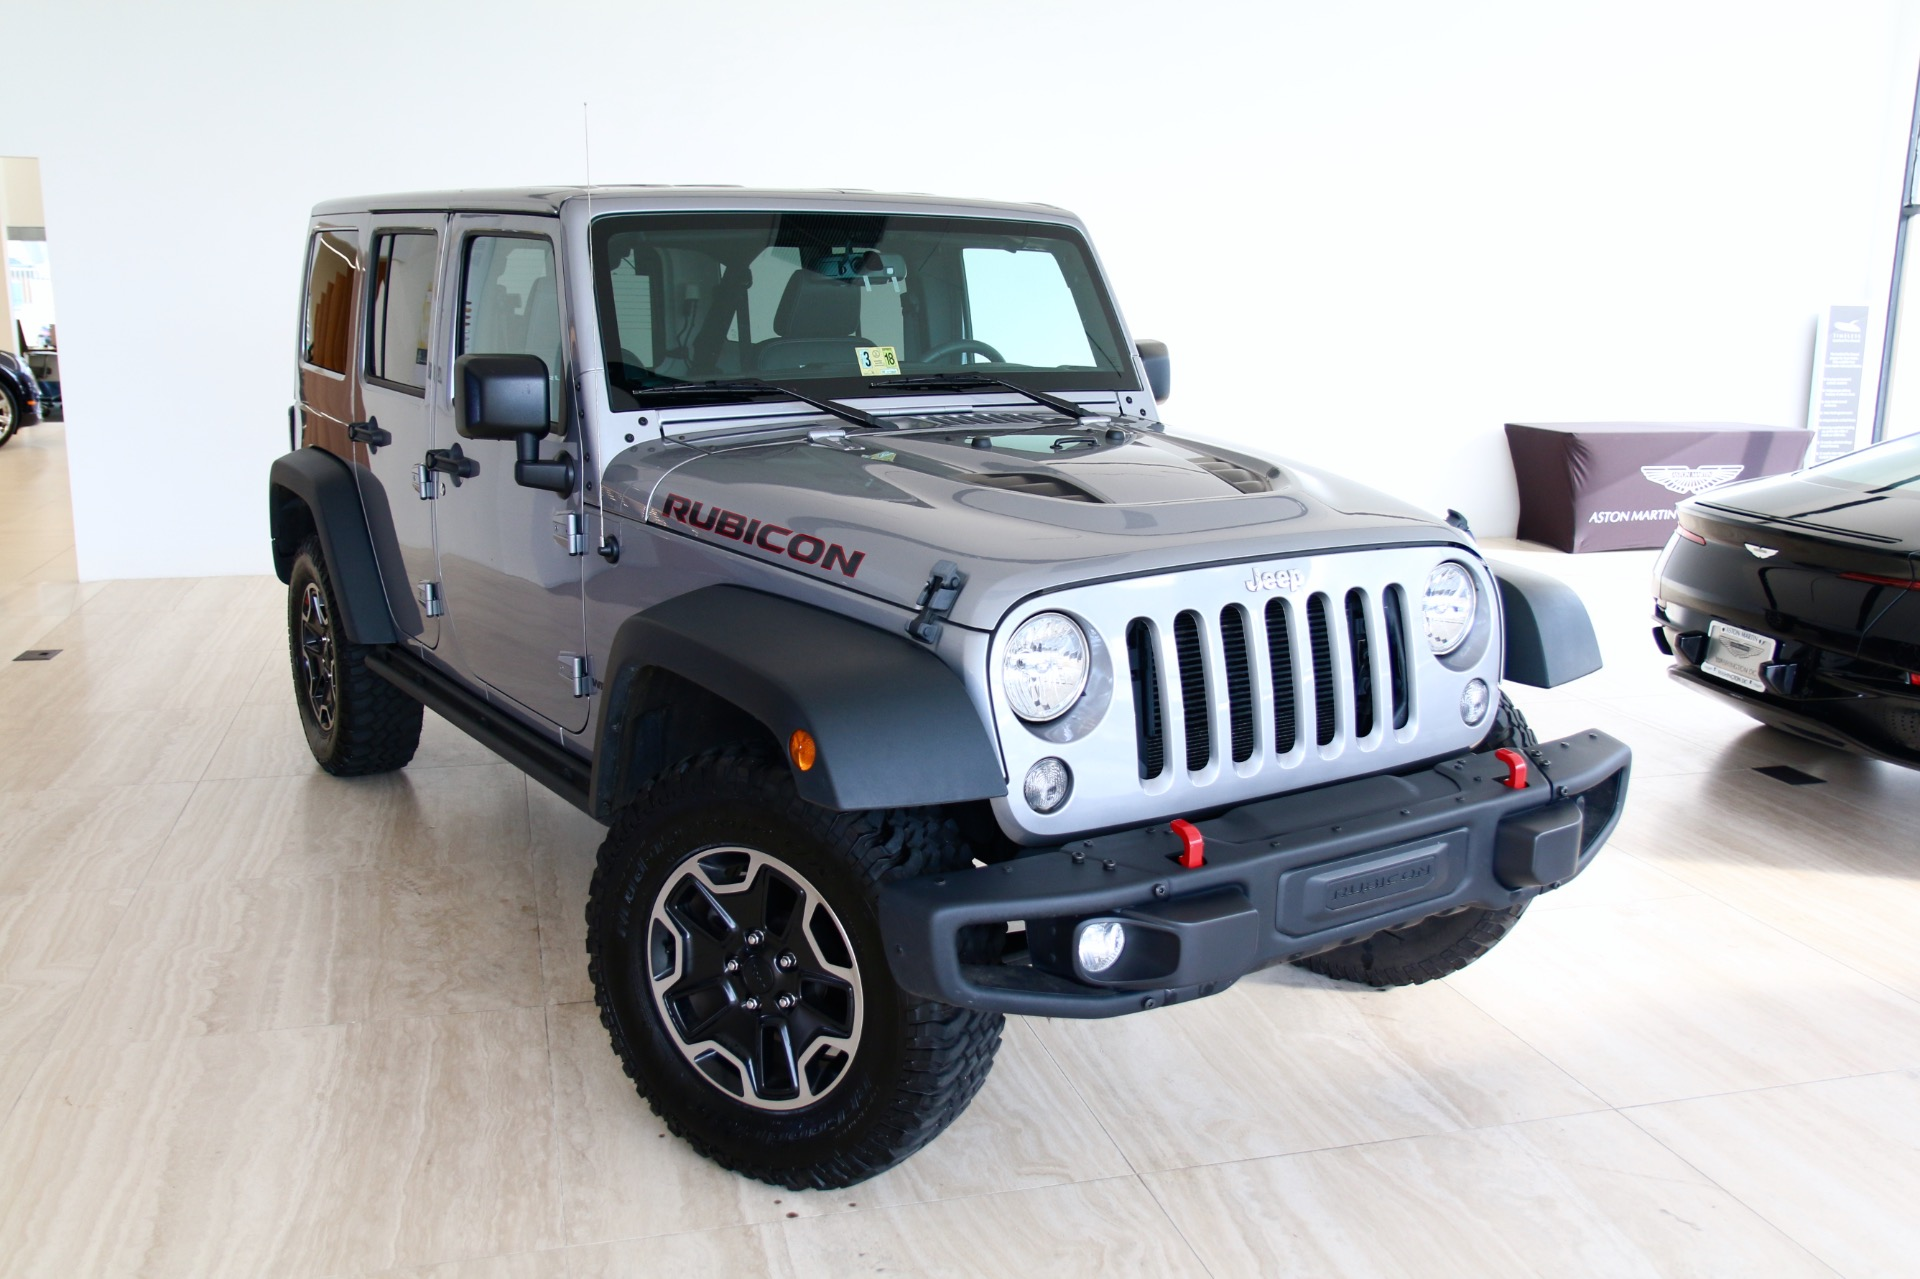 2015 jeep wrangler unlimited rubicon hard rock stock # 7nl02917b